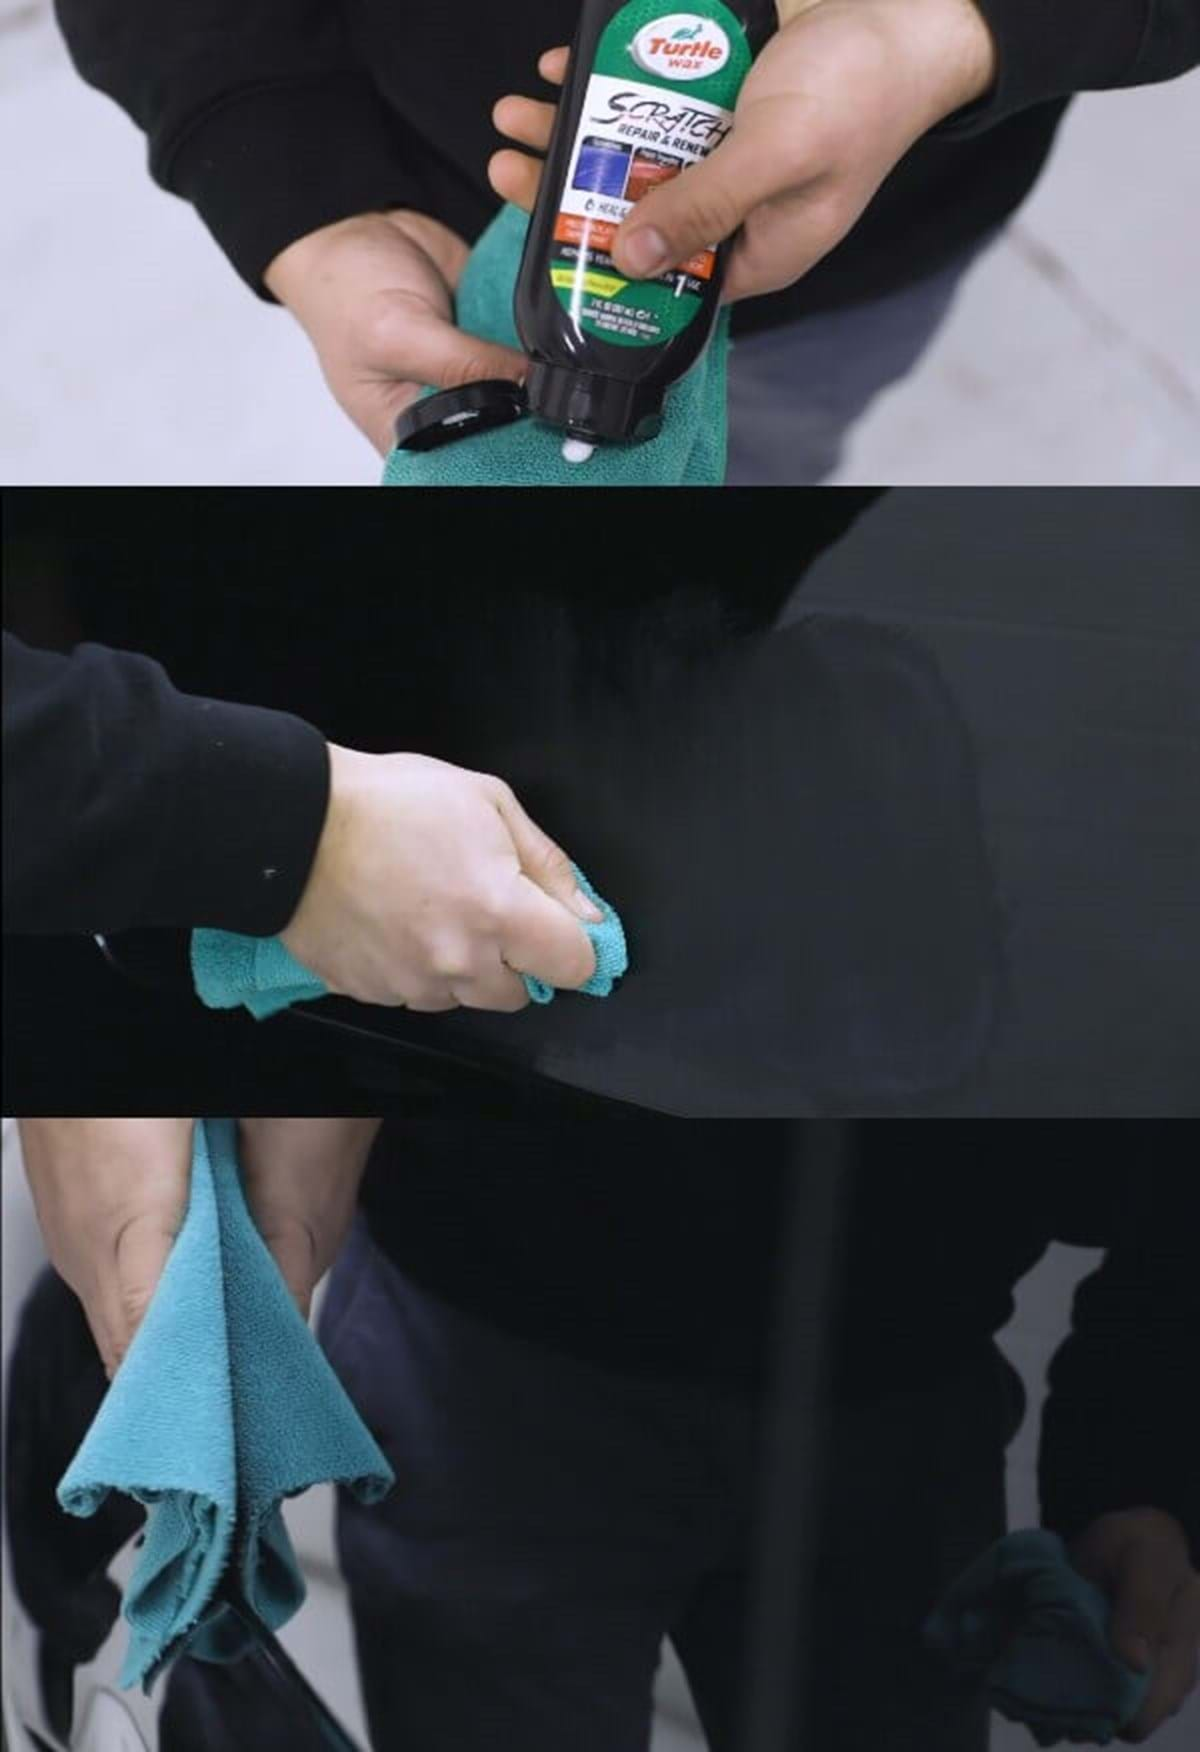 full step guide how to remove light scratches using turtle wax scratch repair and renew compound using a green microfiber cloth and hand application